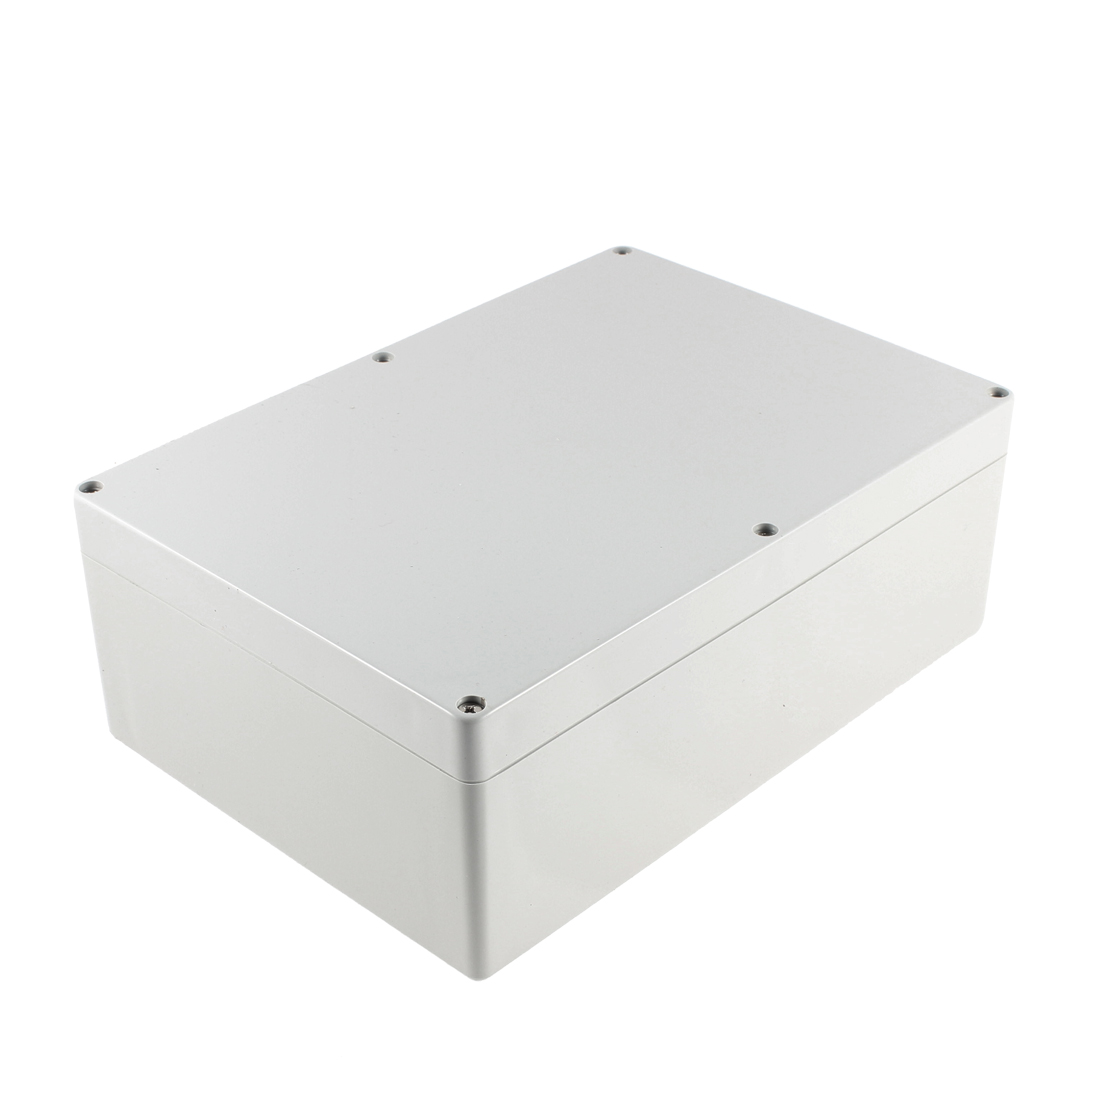 Plastic Electronic Project Junction Box Enclosure Case 262 x 182 x 95mm